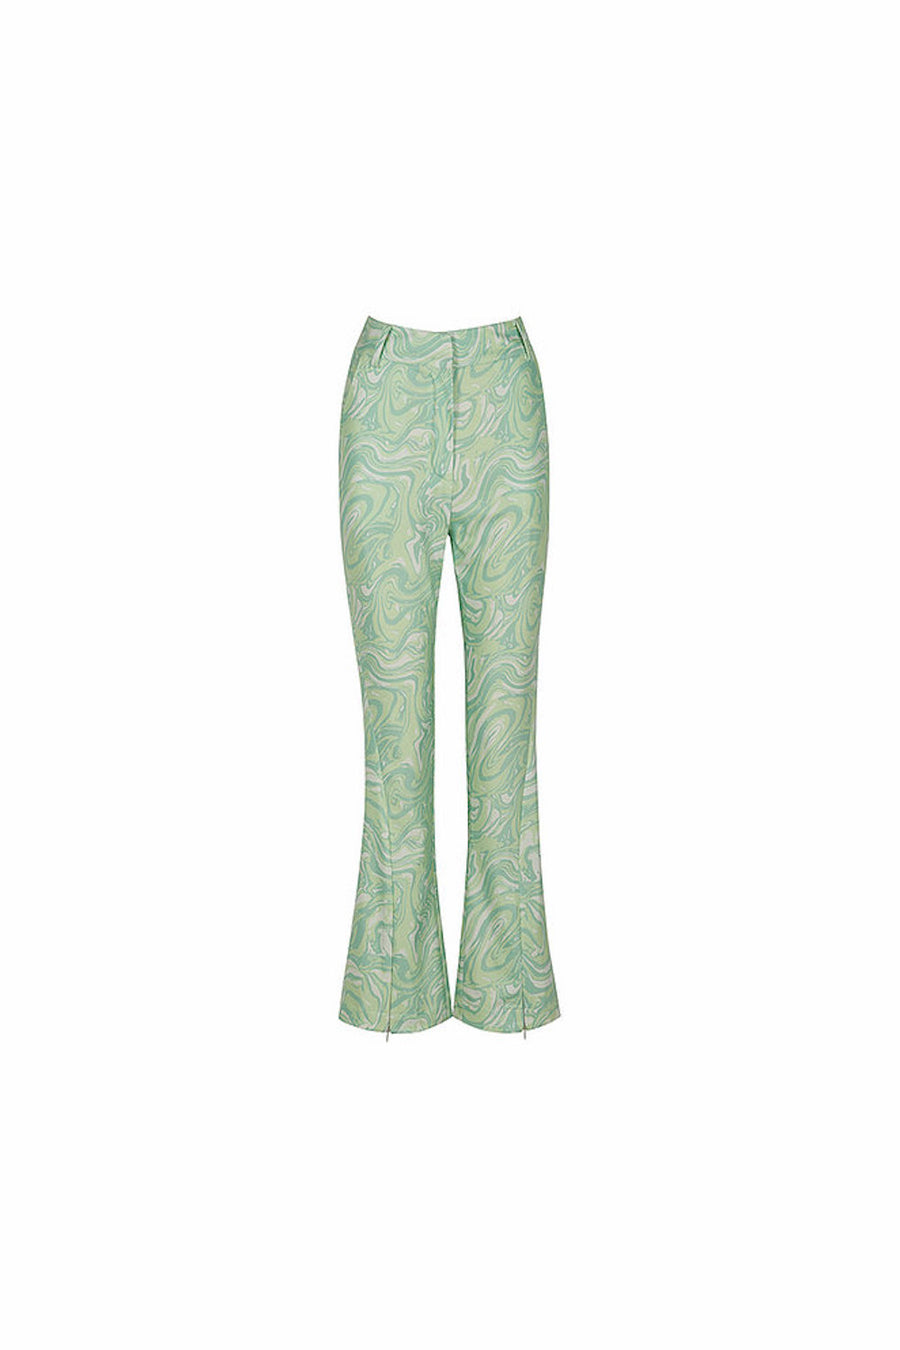 Paradise Party Pants | Sisi Grass | bottoms NZ | HOUSE OF SUNNY NZ | Black Box Boutique Auckland | Womens Fashion NZ